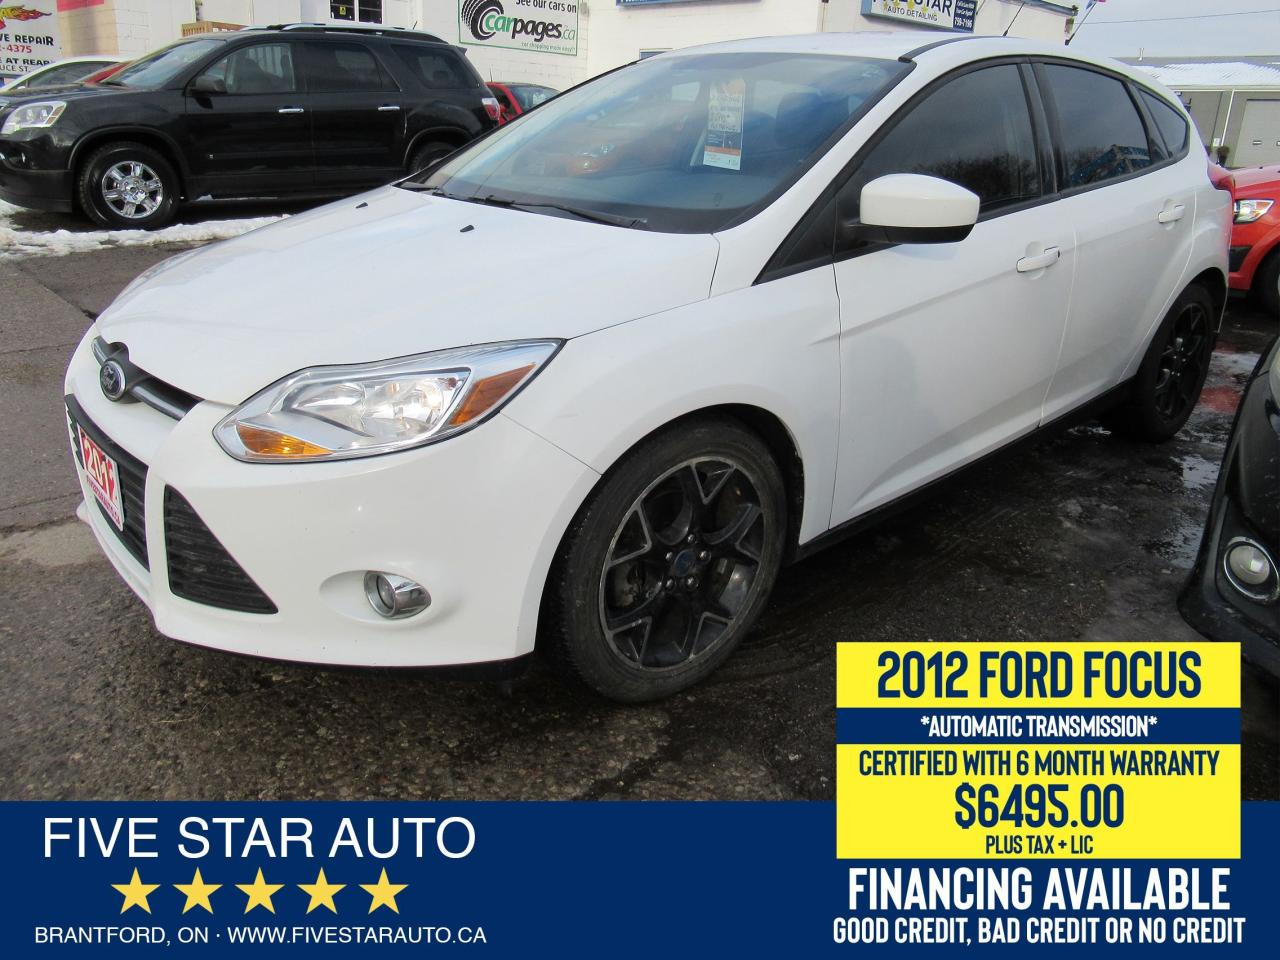 2012 Ford Focus SE - Certified w/ 6 Month Warranty